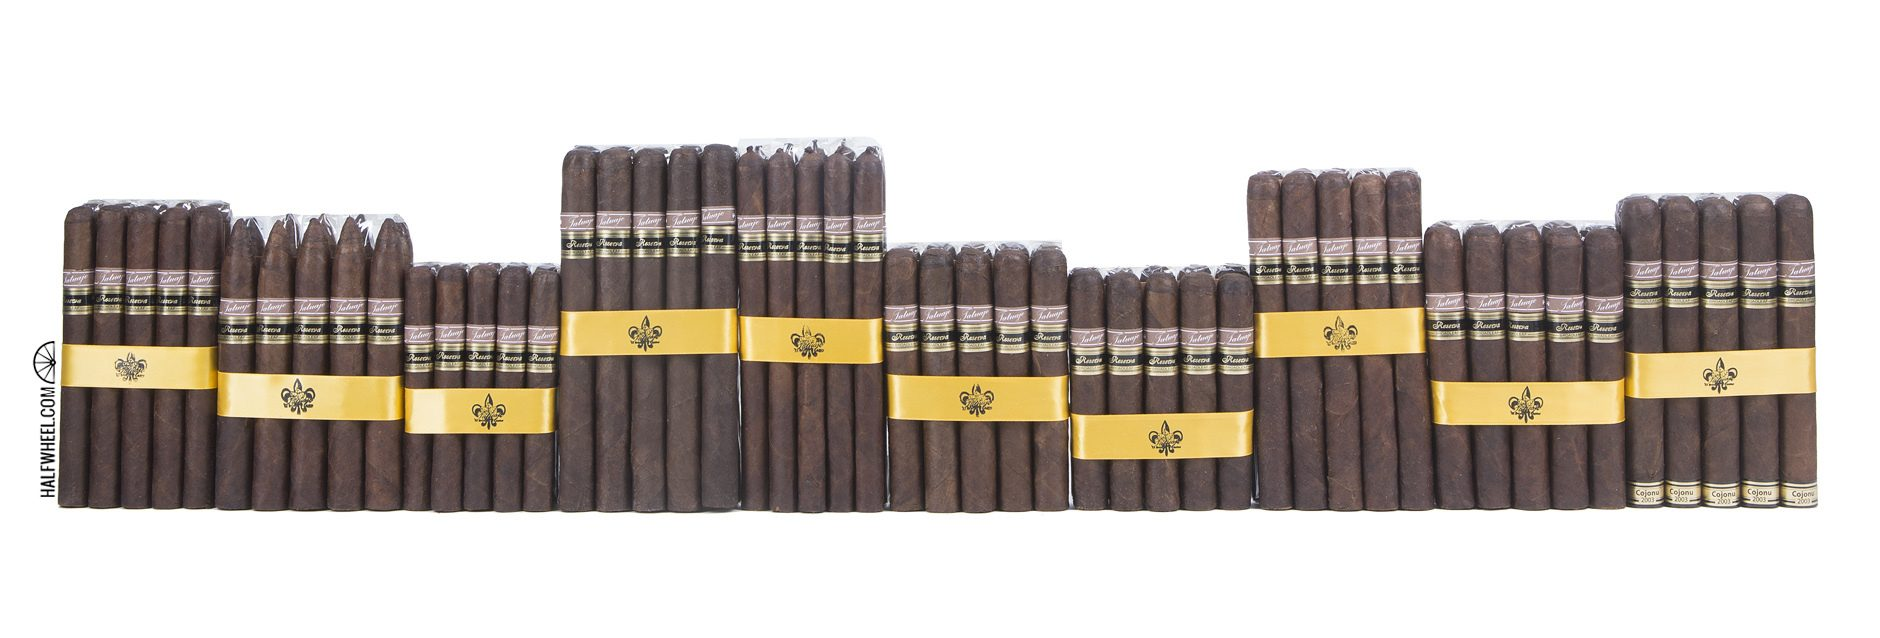 Tatuaje Reserva Broadleaf Collection Bundles